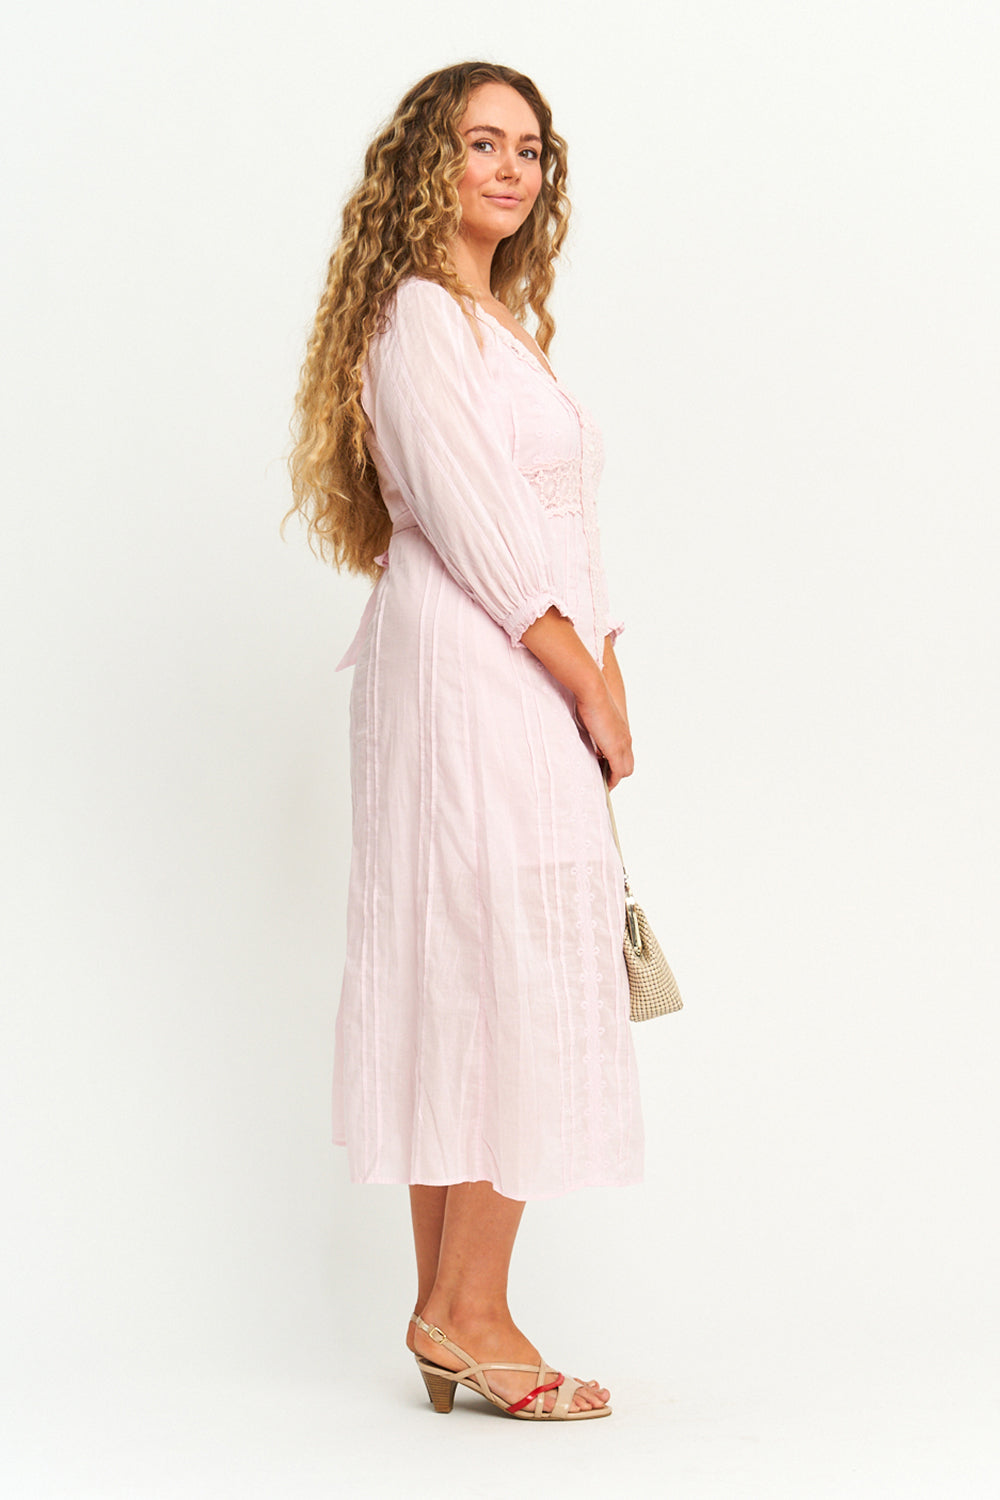 Poeme Sundress in Blush